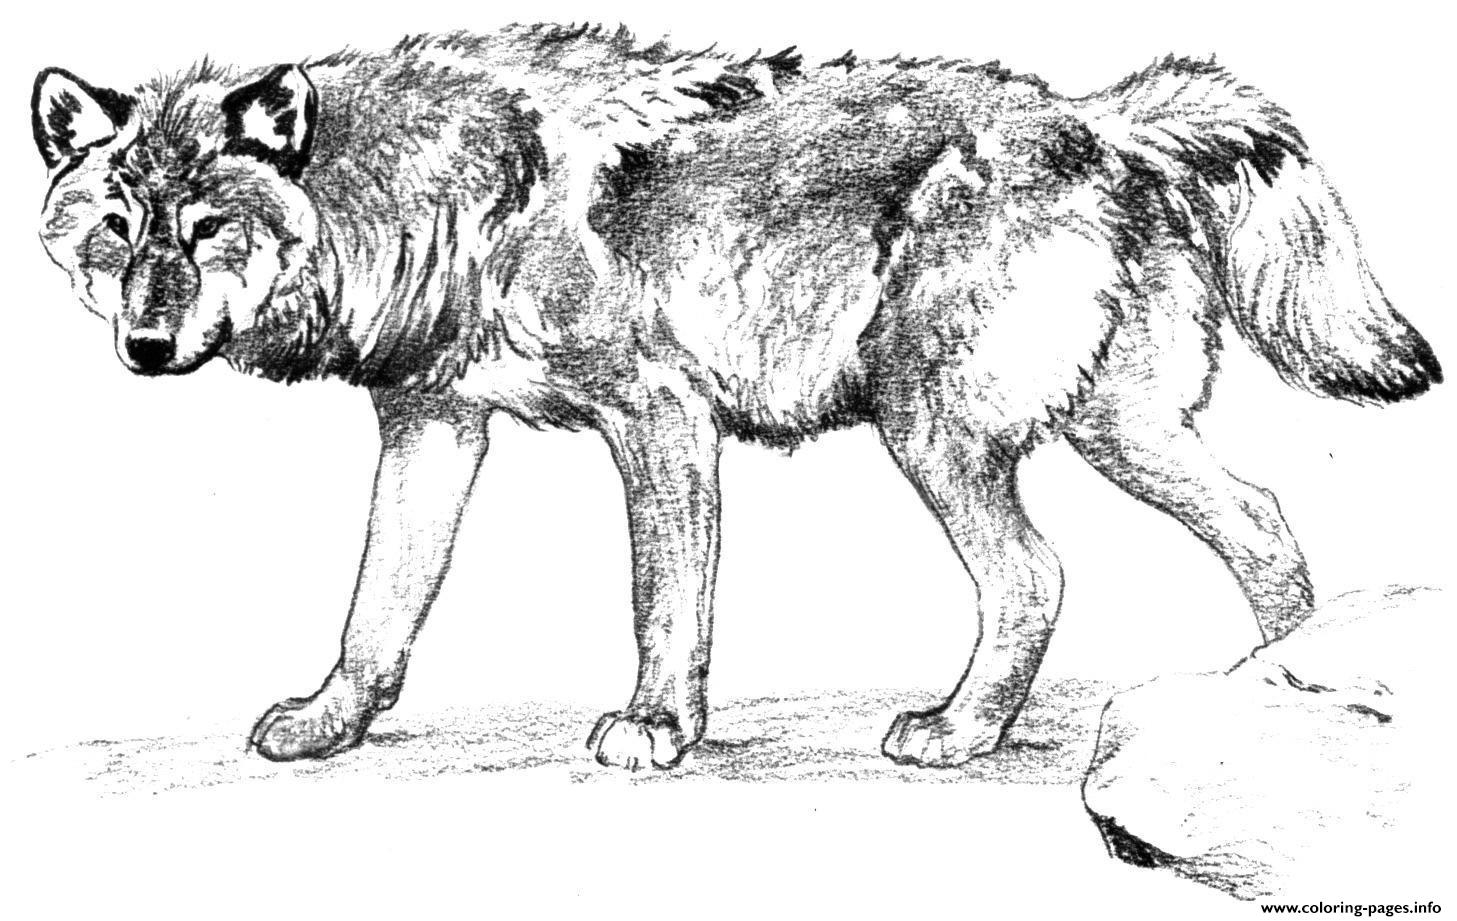 Wolf Coloring Pages Realistic Collection Printable Coloring Pages to Print Of Wolves Coloring Pages Wolf Coloring Pages Free Coloring Pages Collection